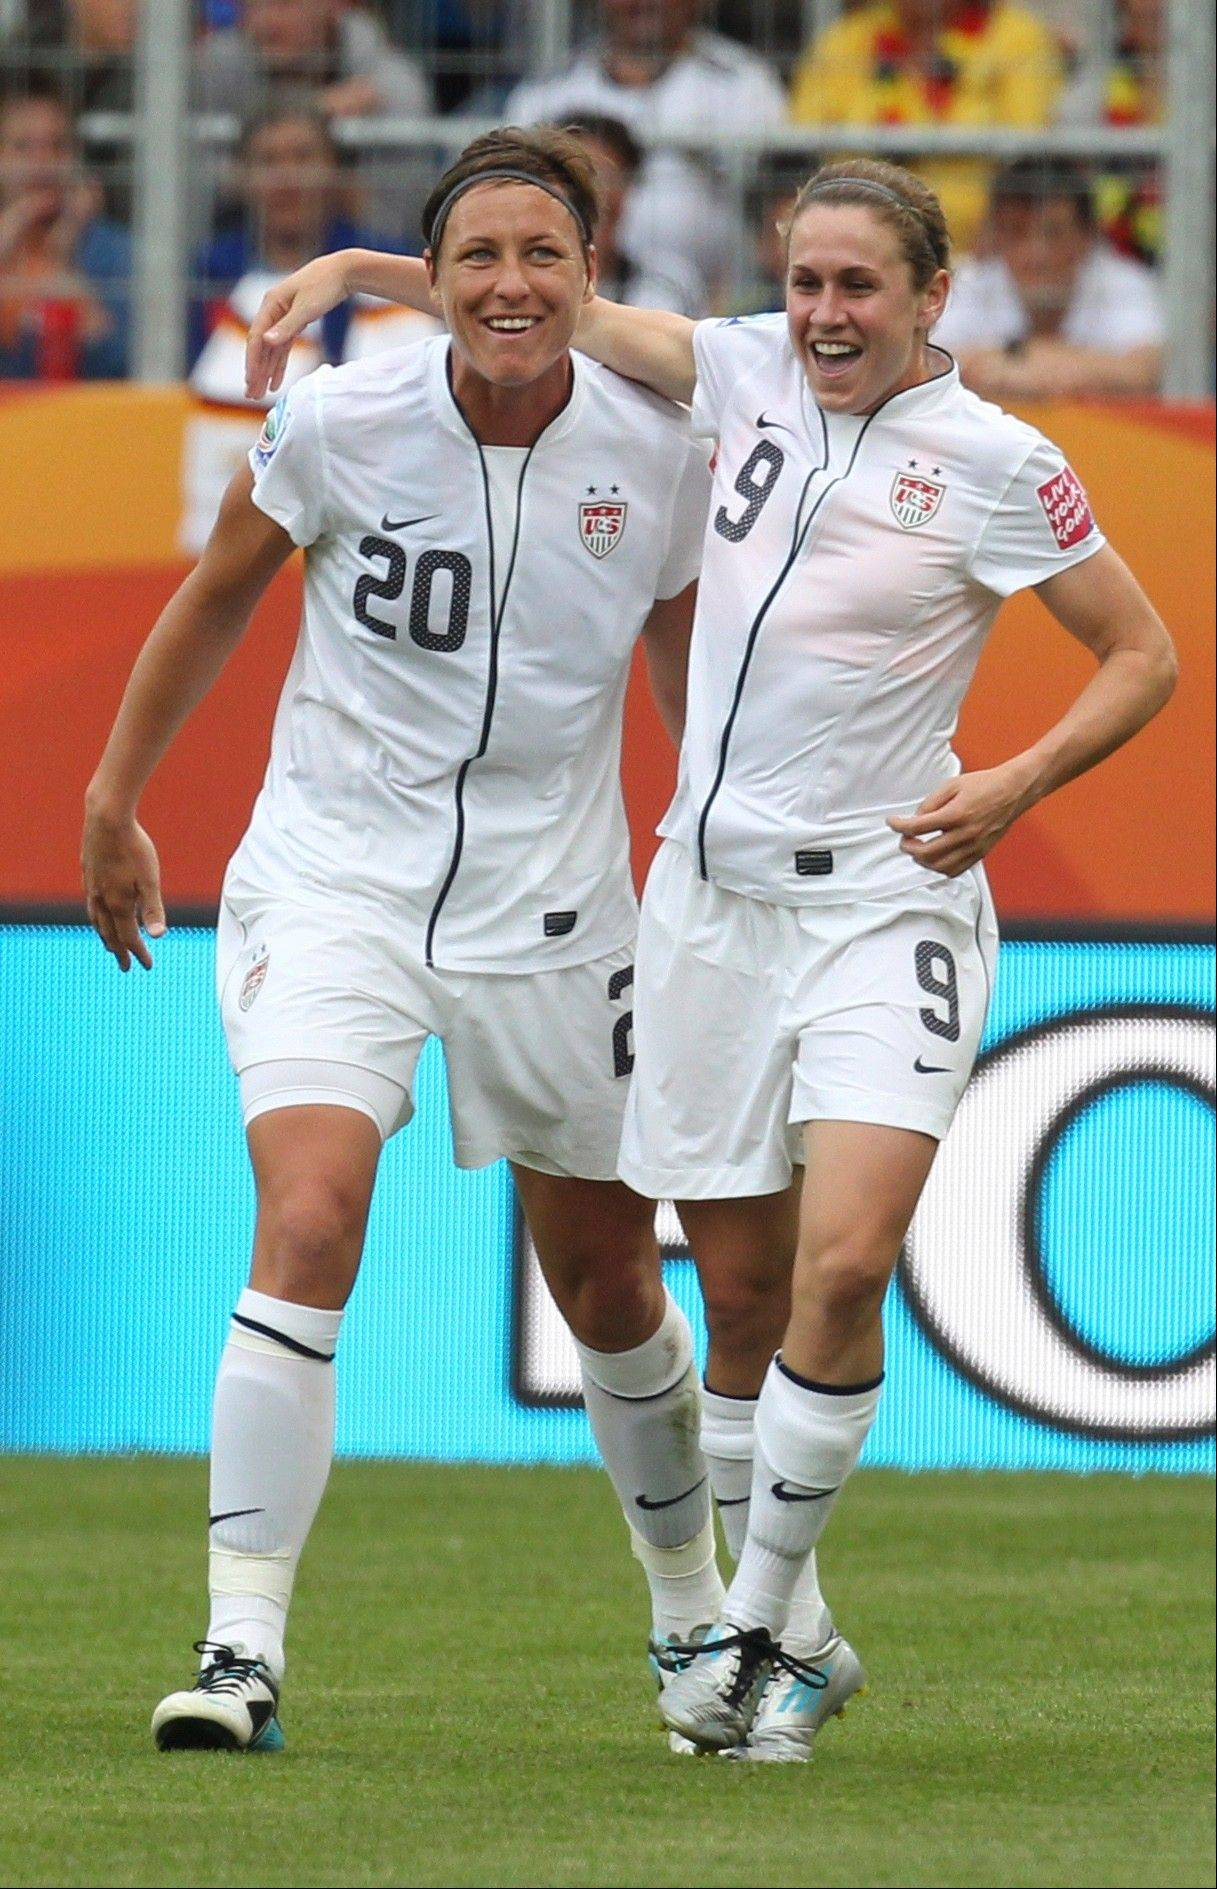 Abby Wambach, left, celebrates after teammate Heather O'Reilly scored the opening goal during the United States' 3-0 victory over Colombia on Saturday in World Cup play in Sinsheim, Germany.